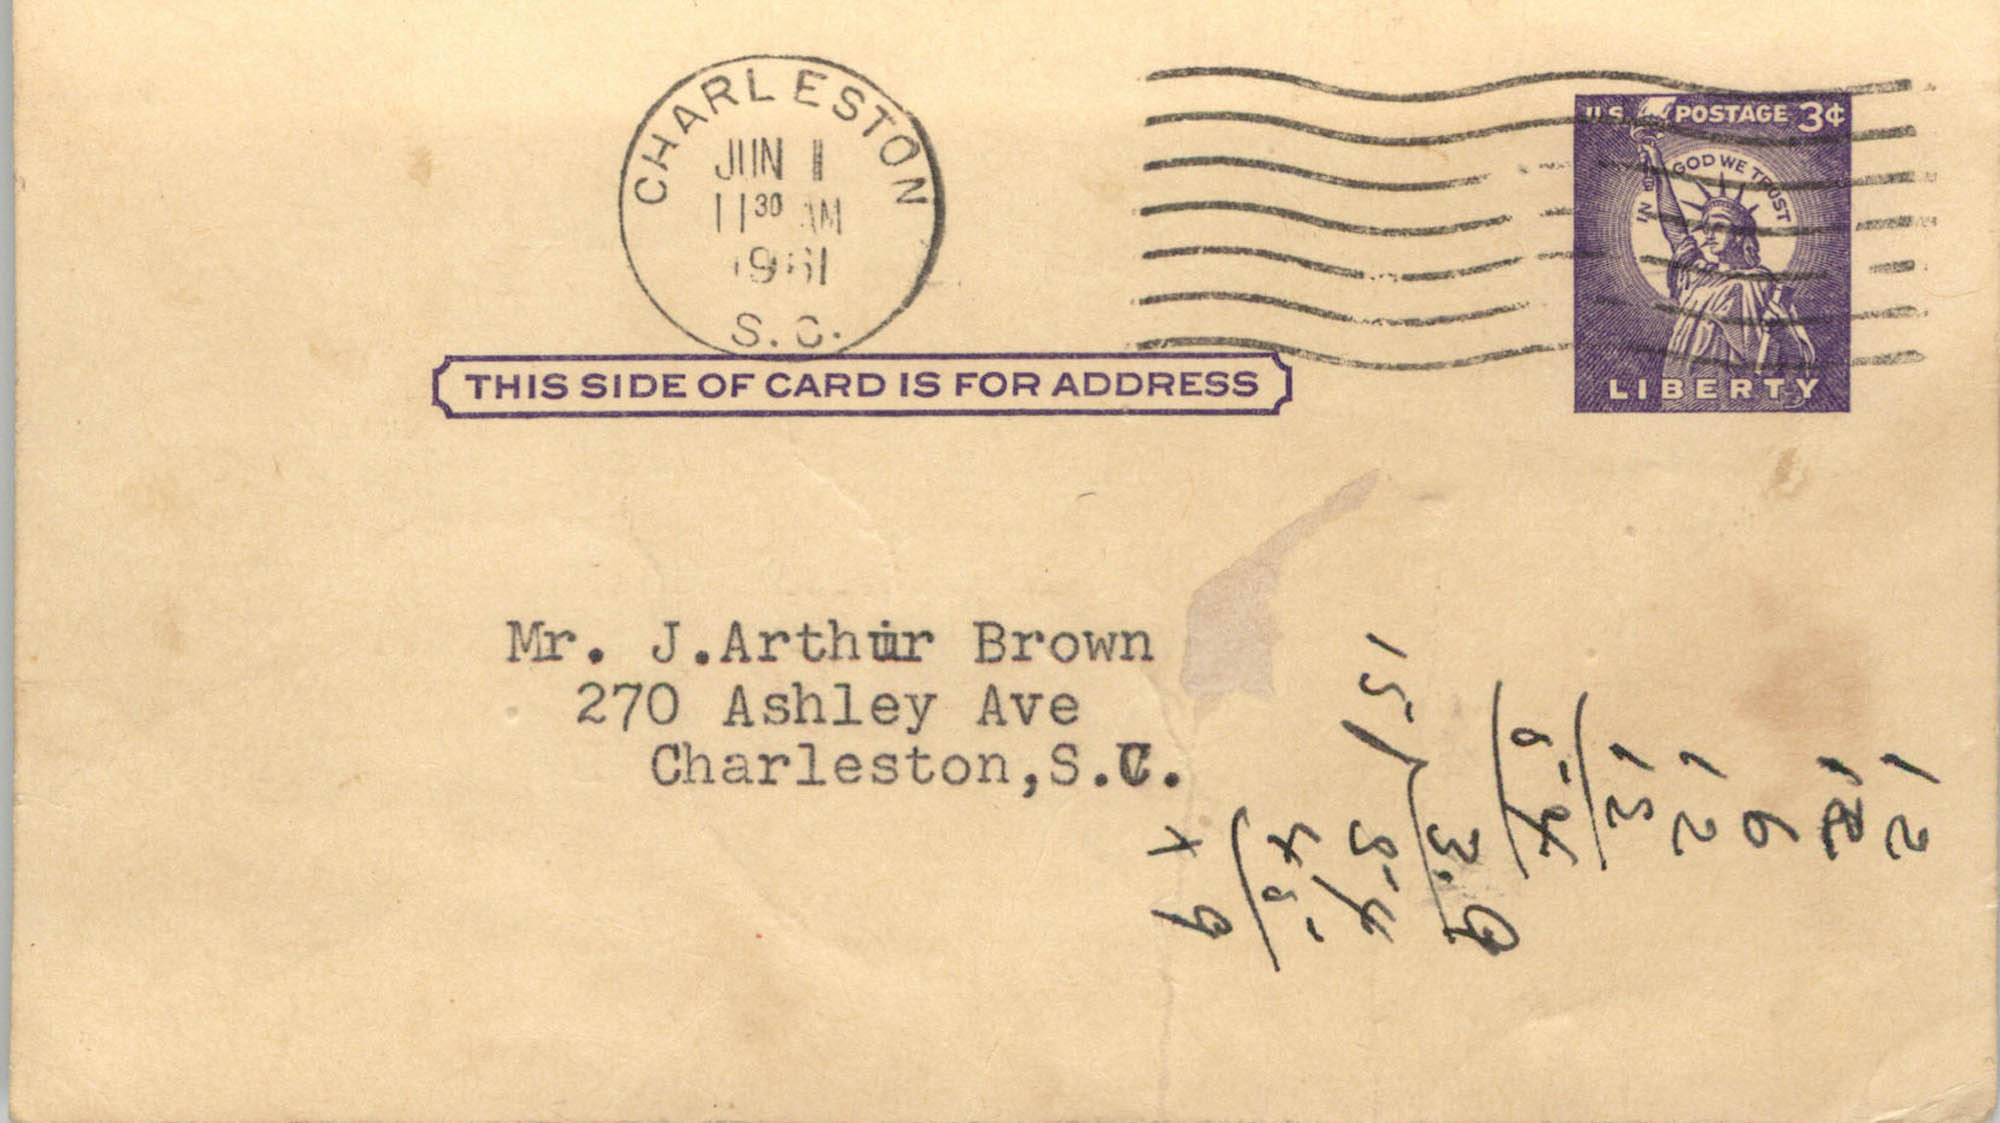 Postcard from NAAWP to J. Arthur Brown, June 11, 1961